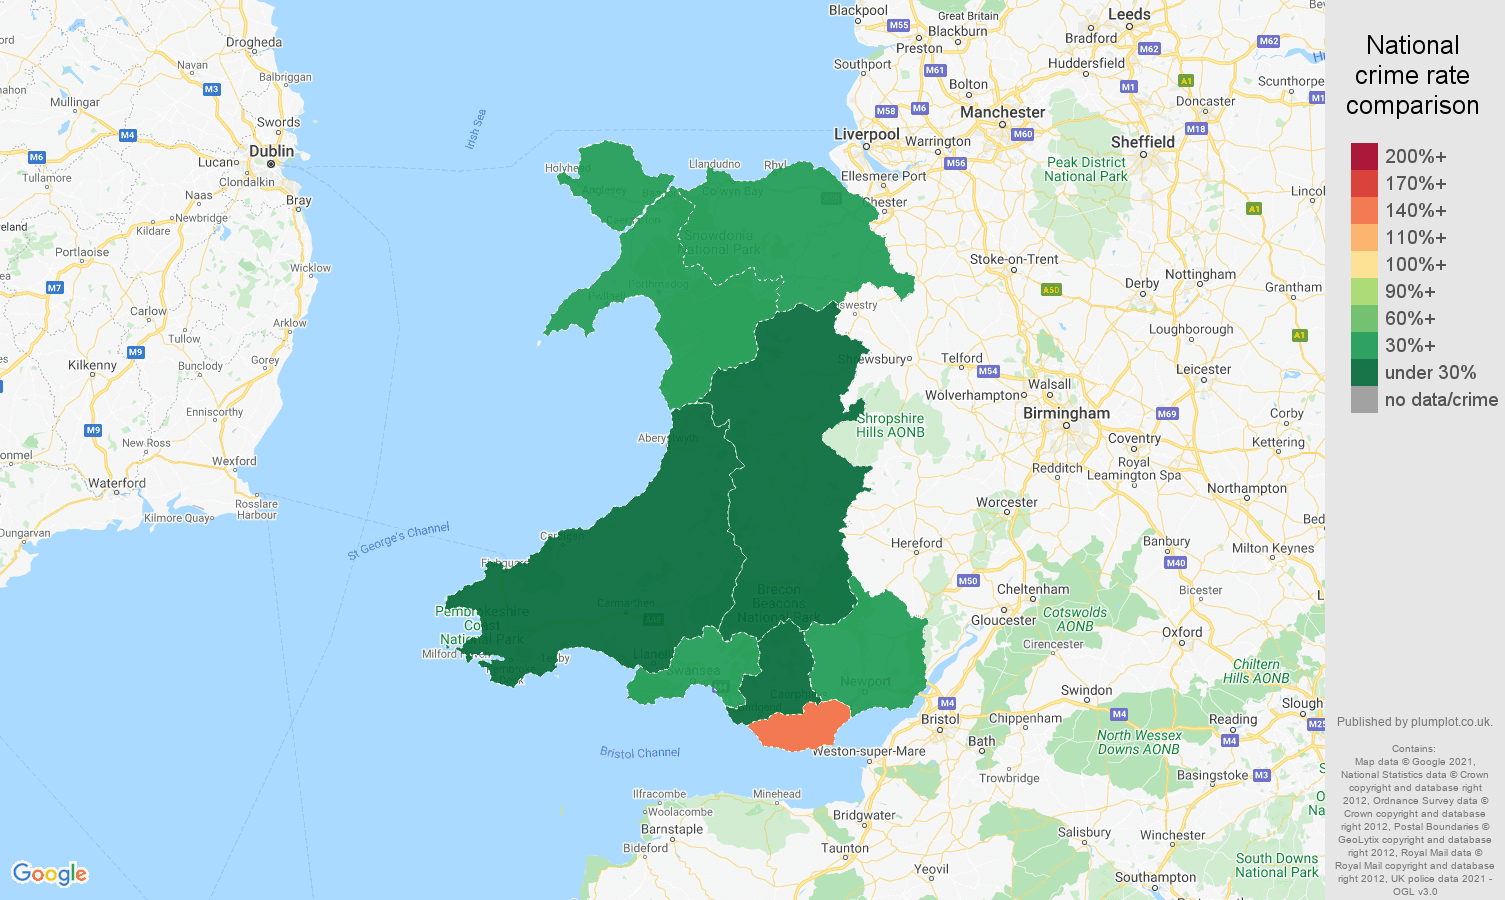 Wales bicycle theft crime rate comparison map